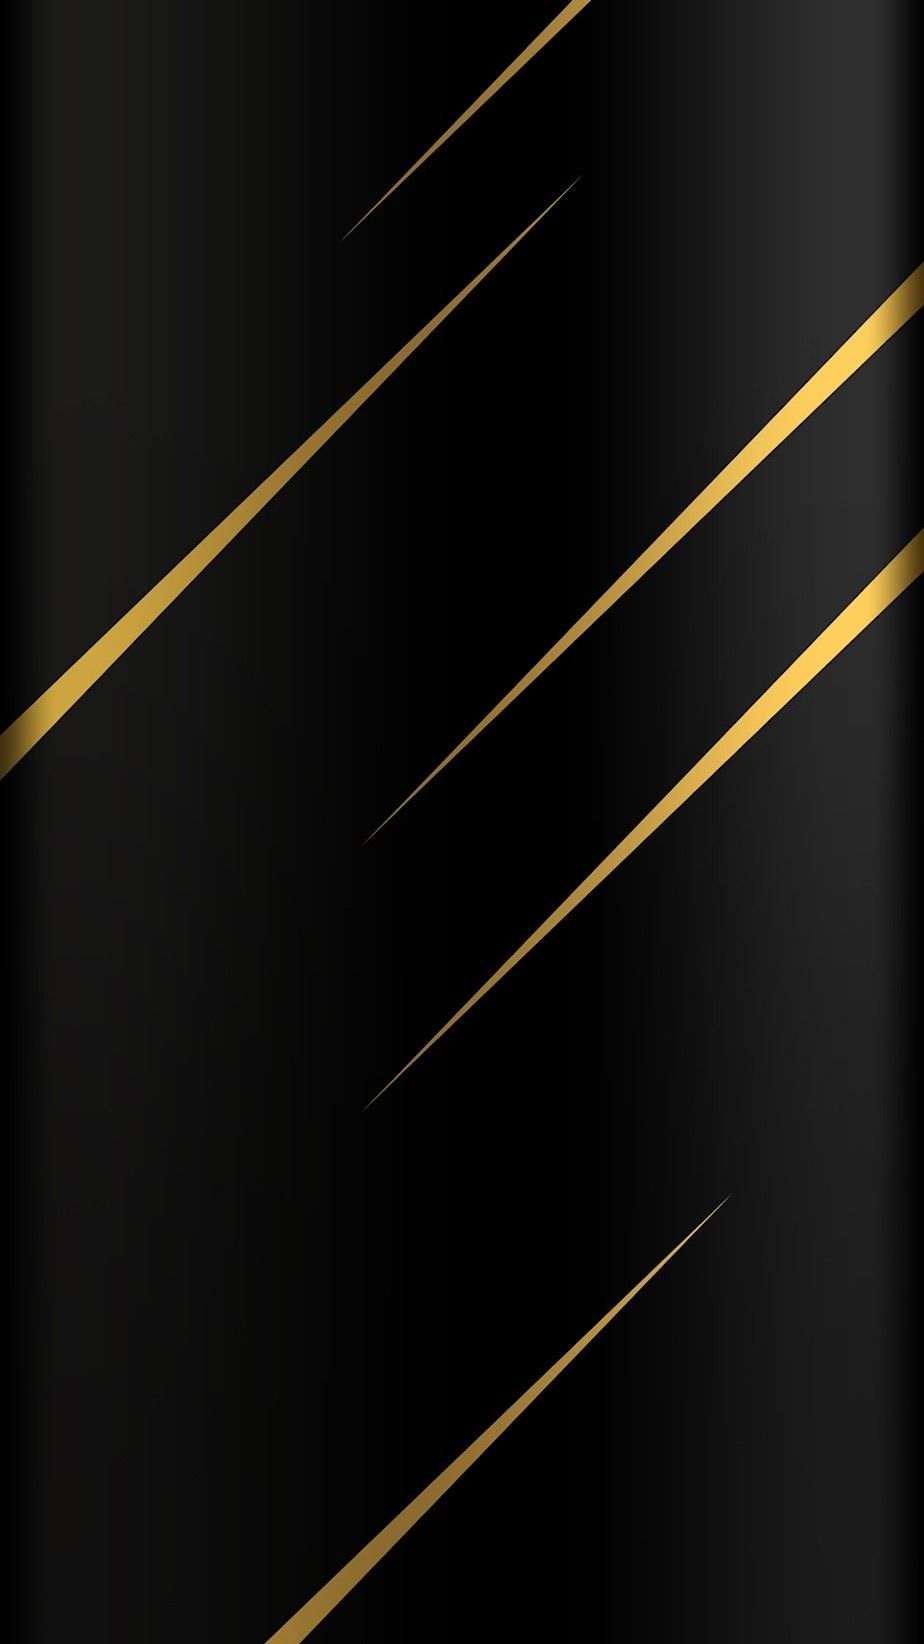 Black And Gold Wallpapers In 2019 Black Wallpaper Black